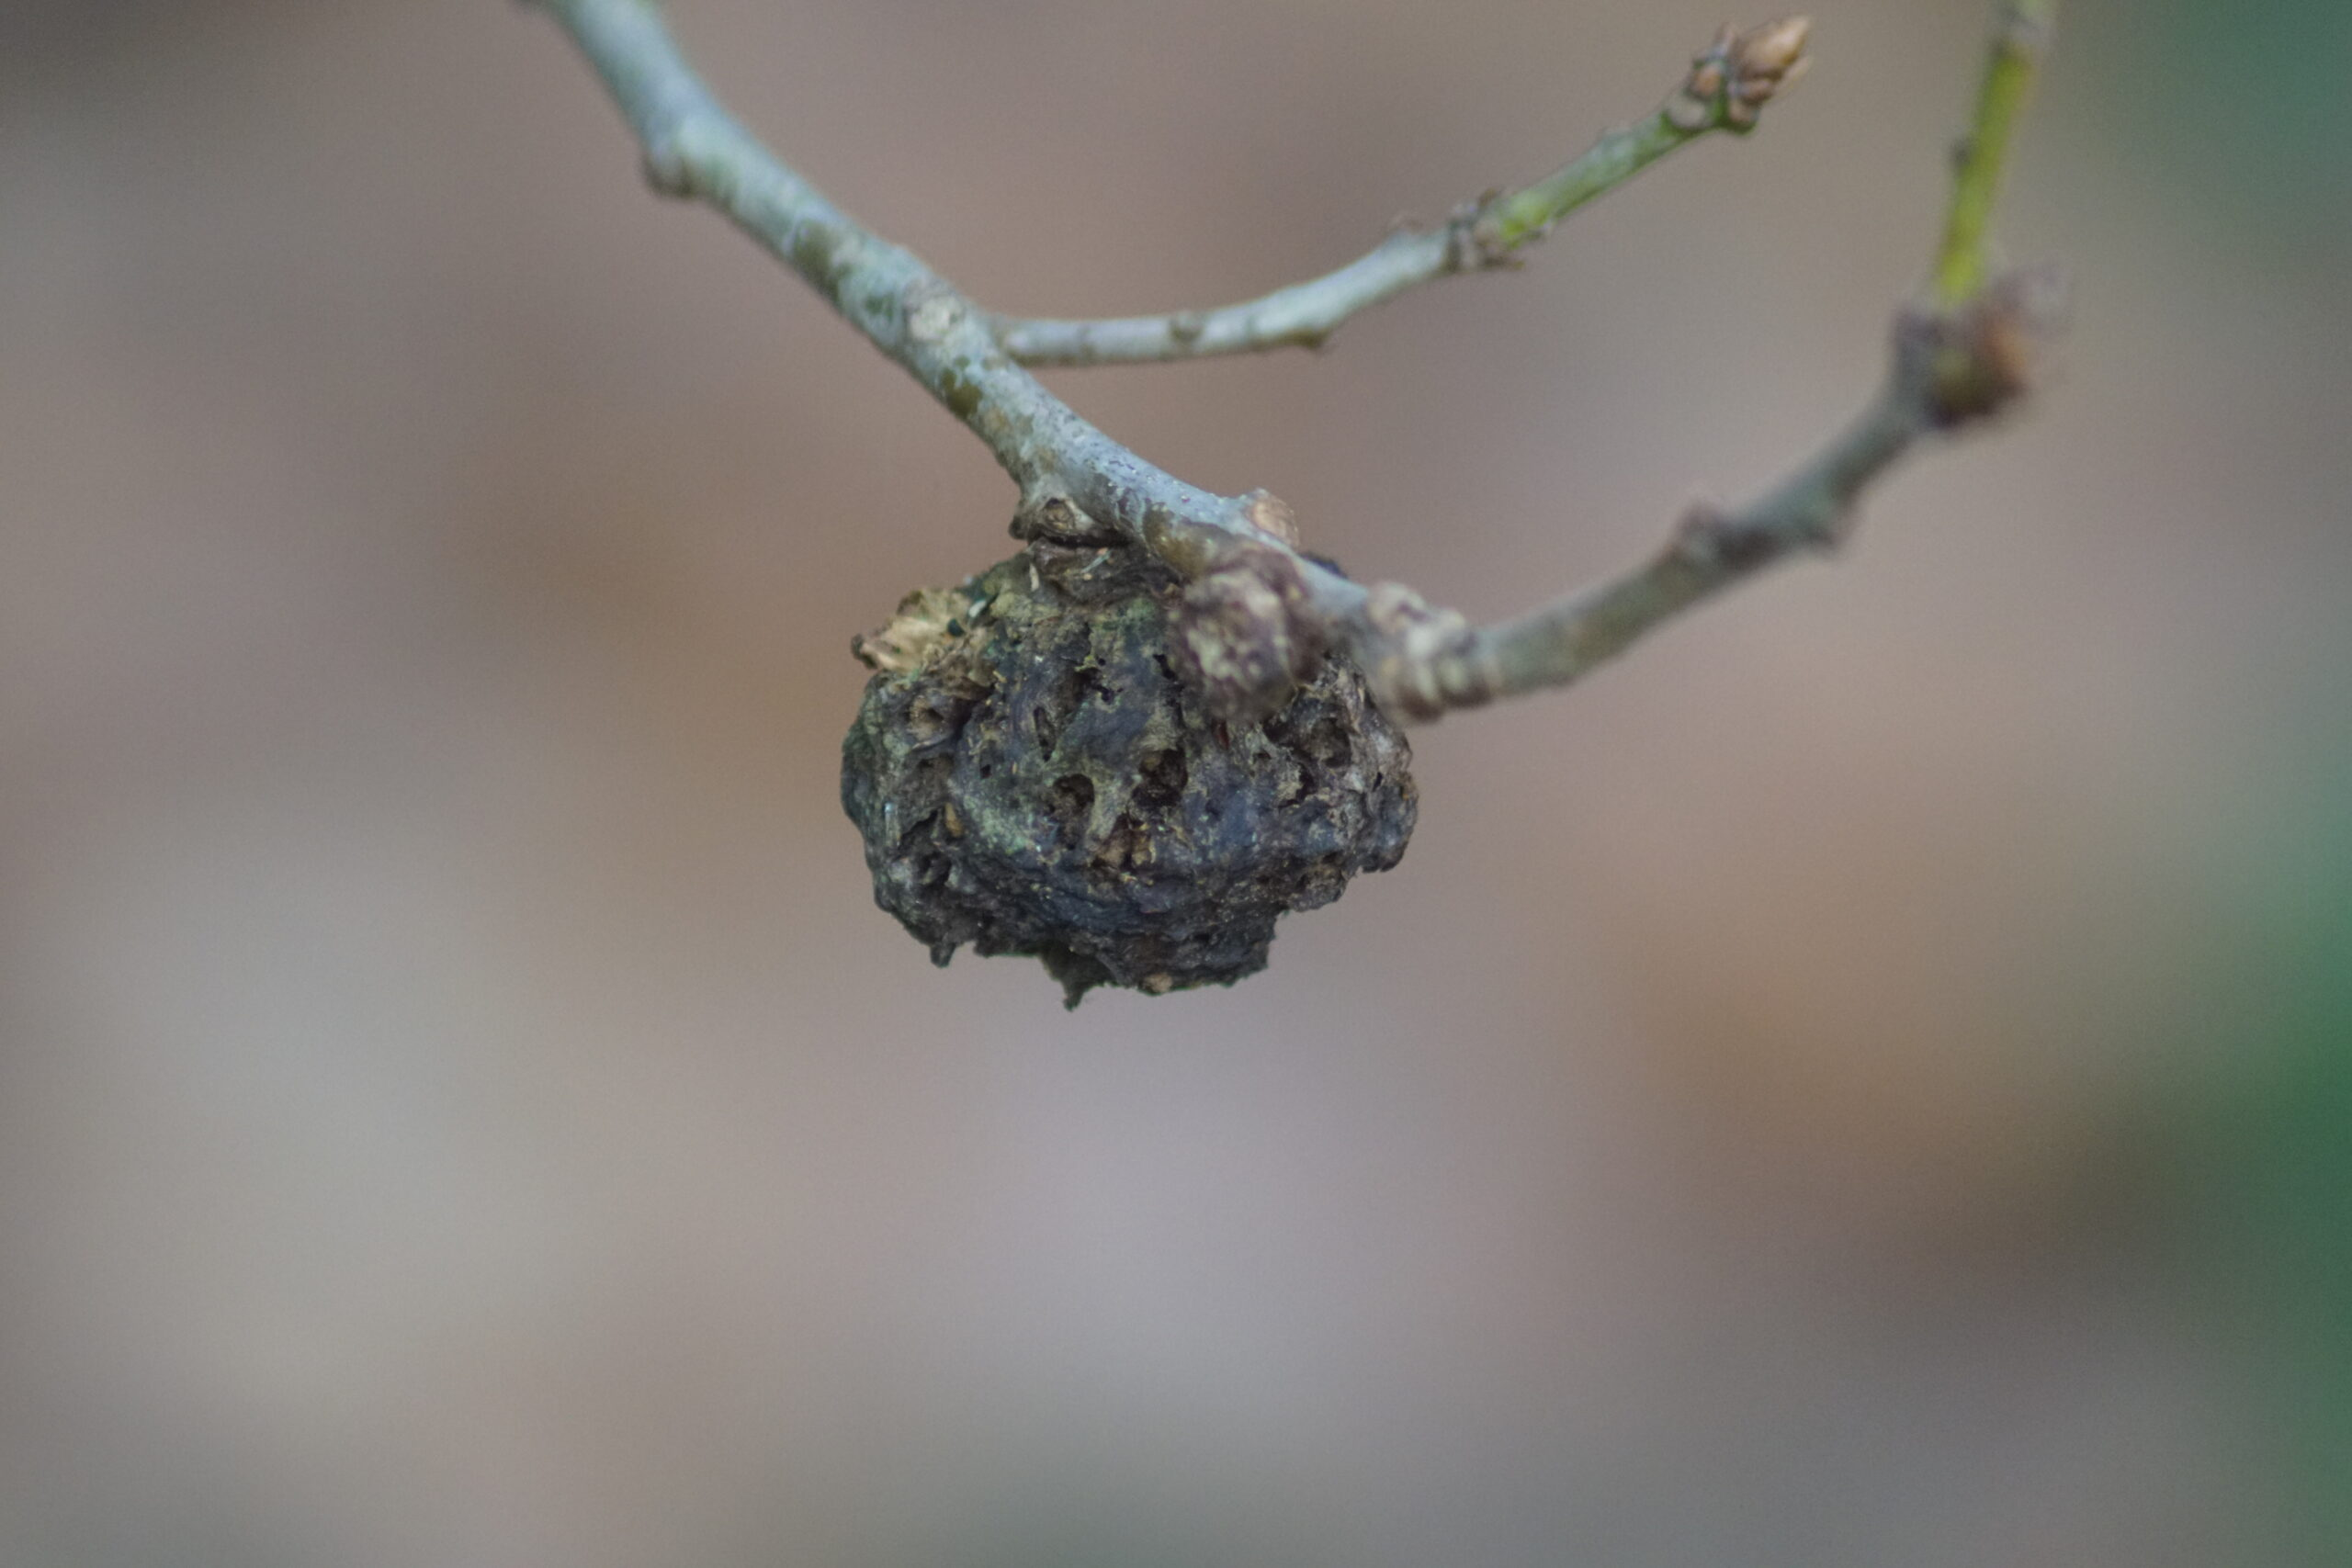 The remains of Knopper Gall produced by the Andricus quercuscalicis Gall Wasp